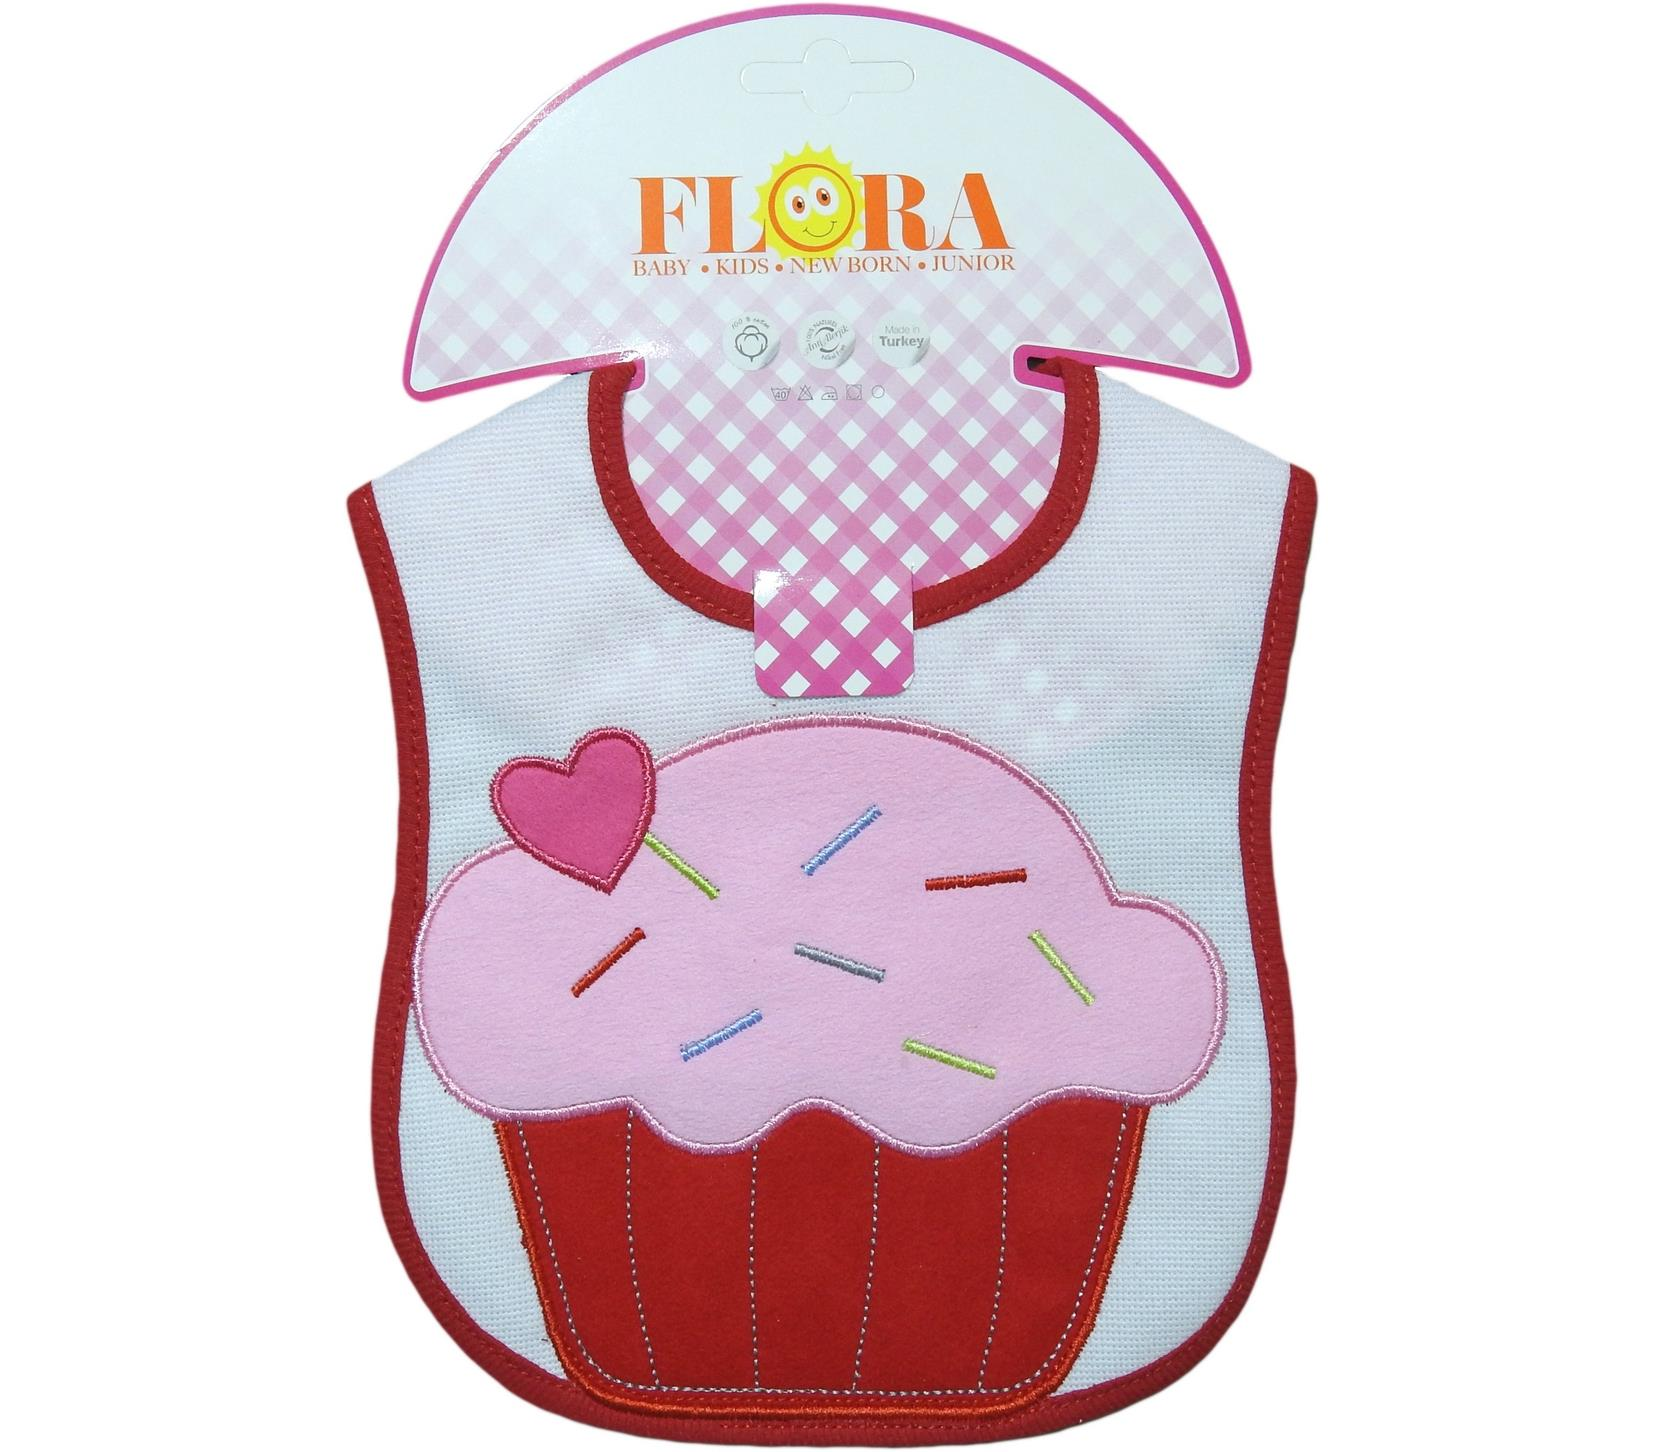 2016 Wholesale cake printed bibs for baby poducts 6 pieces in package